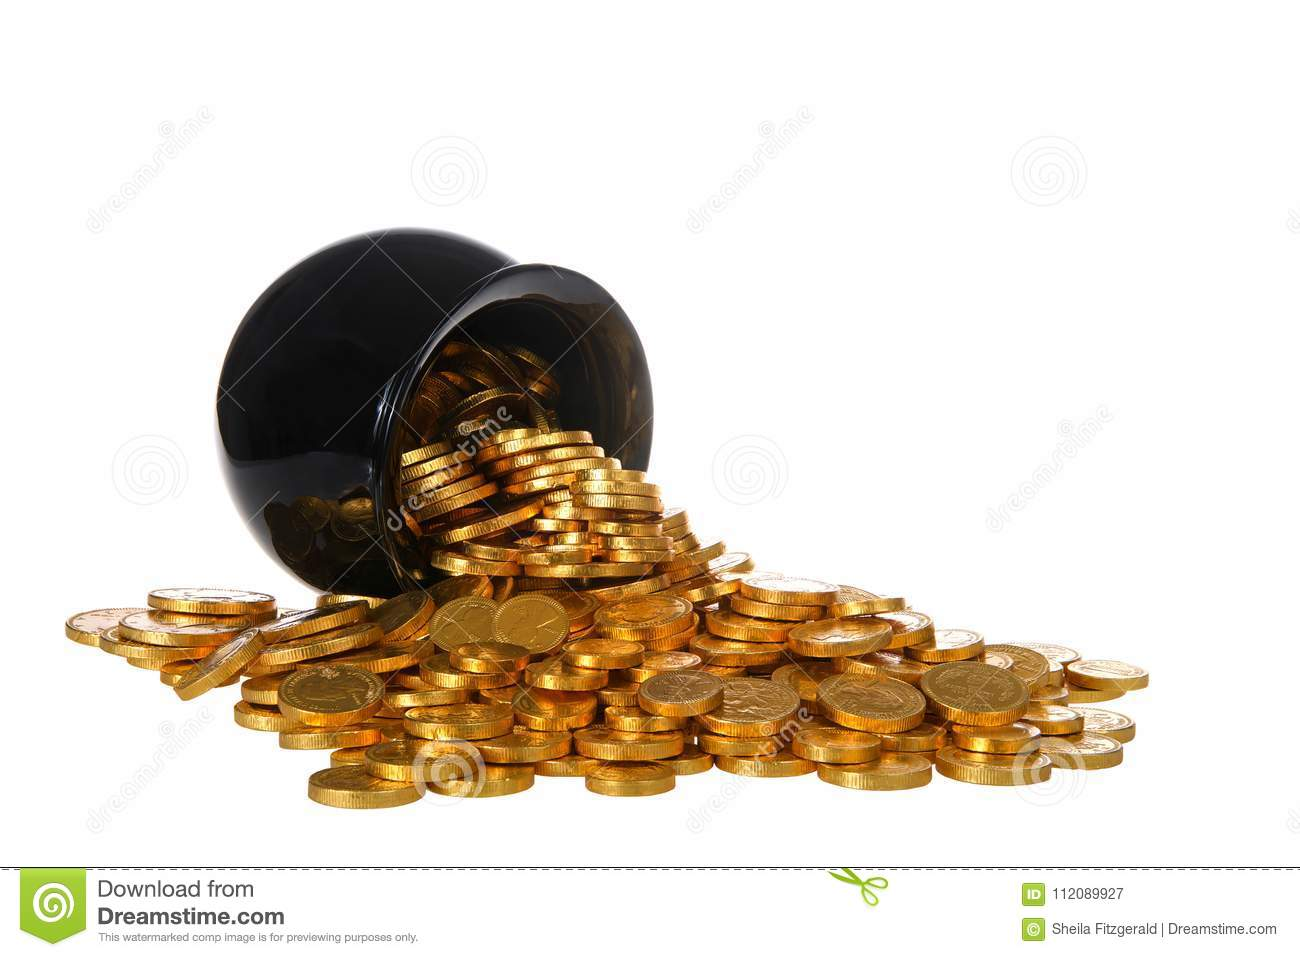 Pot of gold coins spilling over onto white background isolated